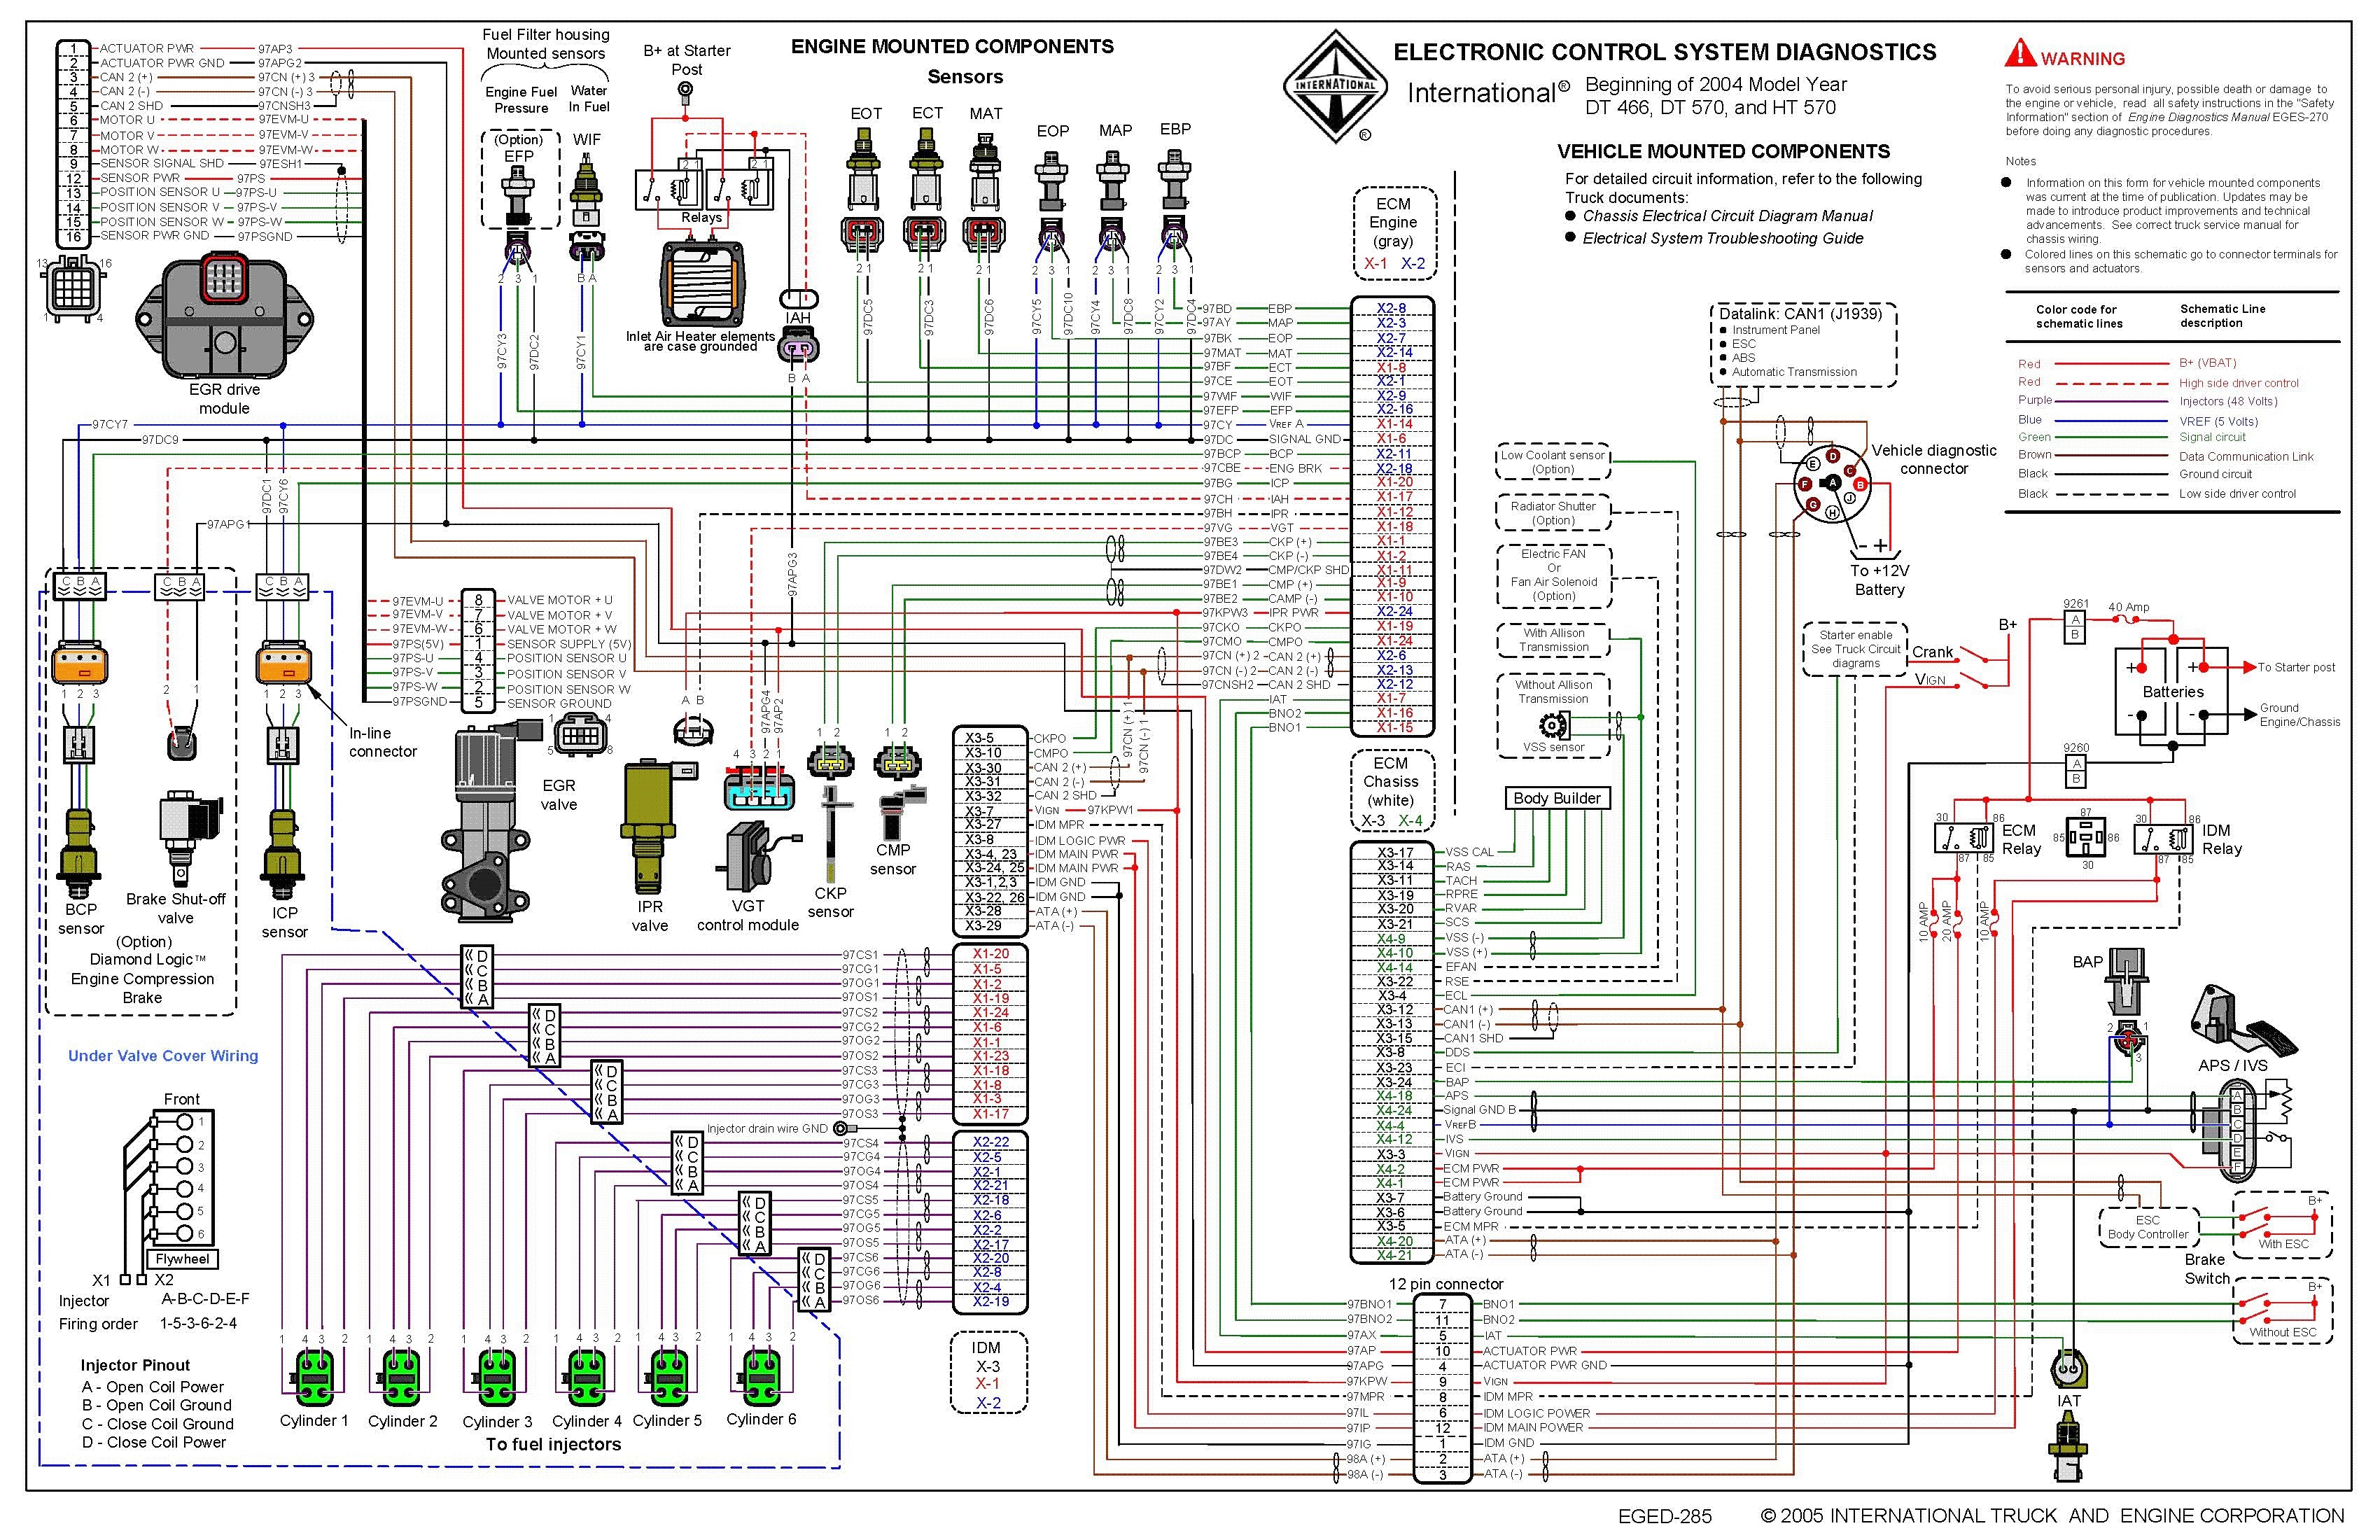 international 4200 wiring diagram for with International 4700 Wiring Schematic on 04 Express Van Wiring Diagram 04 Automotive Wiring Diagrams With 2004 Chevy Venture Fuse Box Diagram likewise International 4700 Wiring Schematic as well Isuzu likewise International Trucks Wiring Diagram additionally Maxxforce Ac Wiring Diagram.